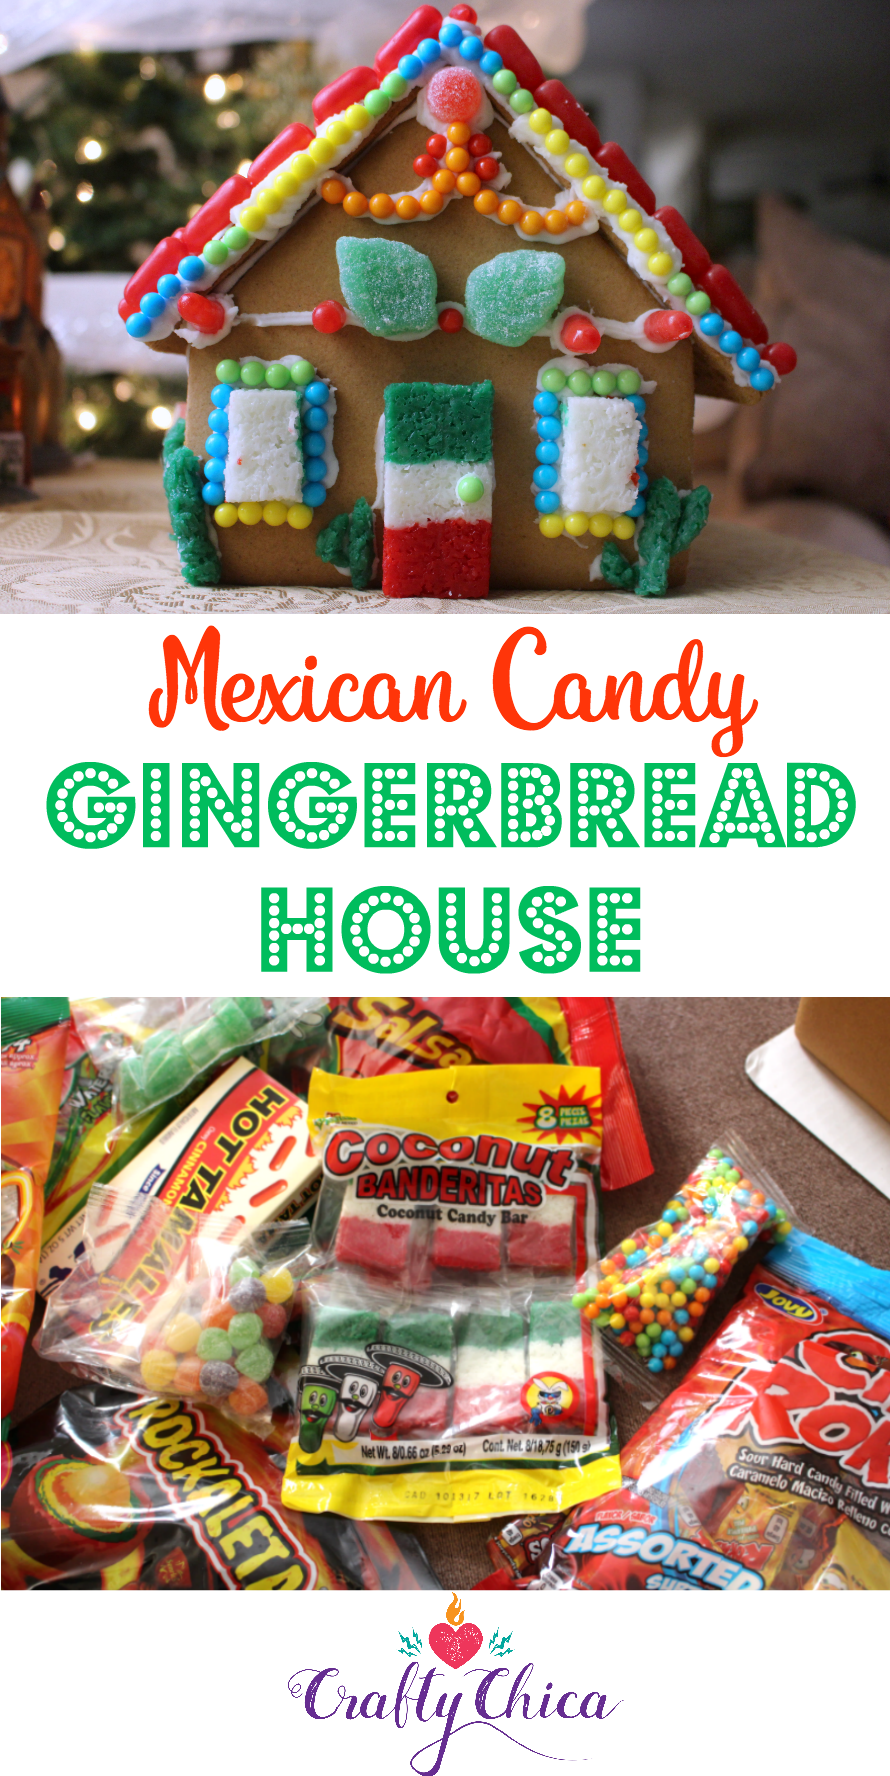 Mexican Candy Gingerbread House The Crafty Chica Crafts Latinx Art Creative Motivation Gingerbread House Mexican Christmas Decorations Mexican Candy